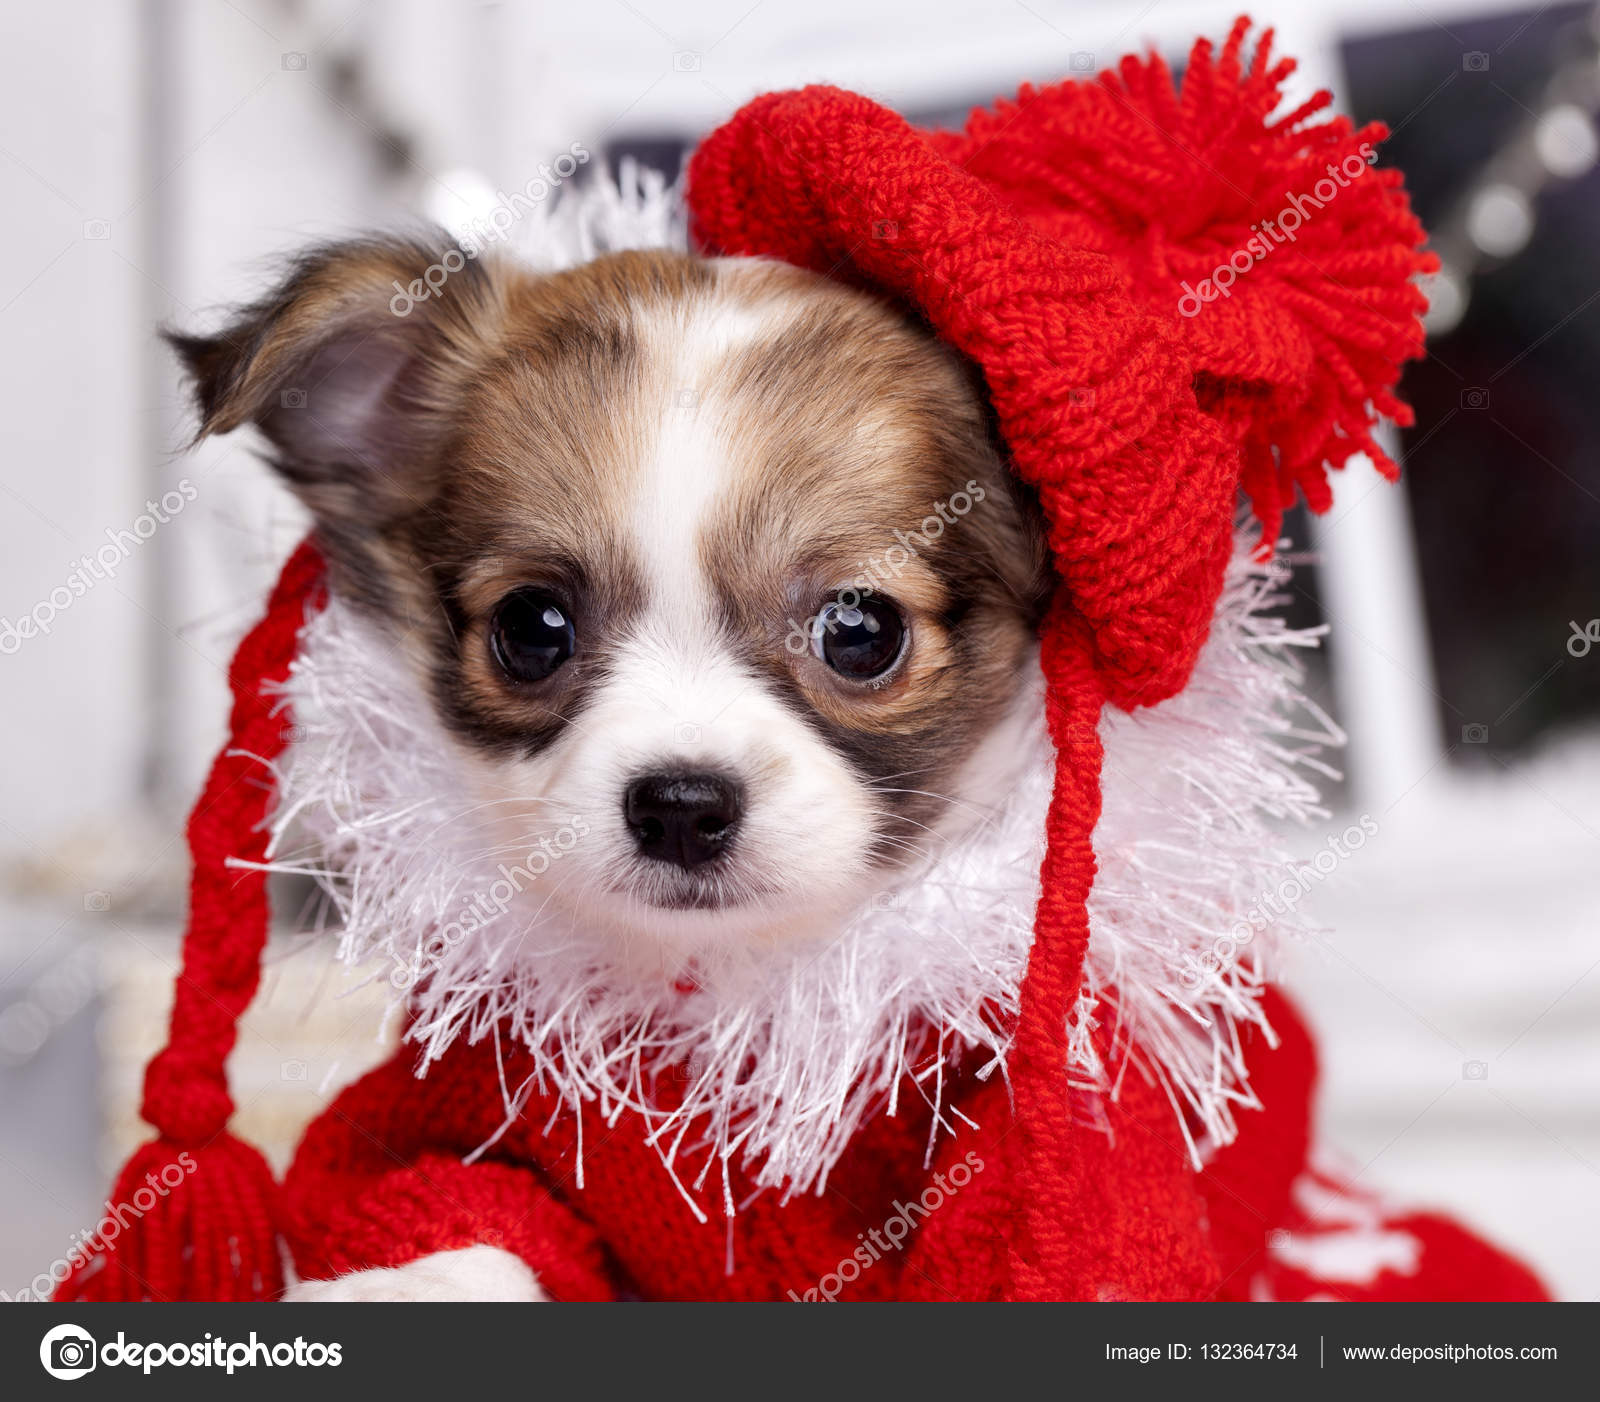 b597bcd3c8748 Chihuahua puppy wearing hat — Stock Photo © Lilun Li  132364734